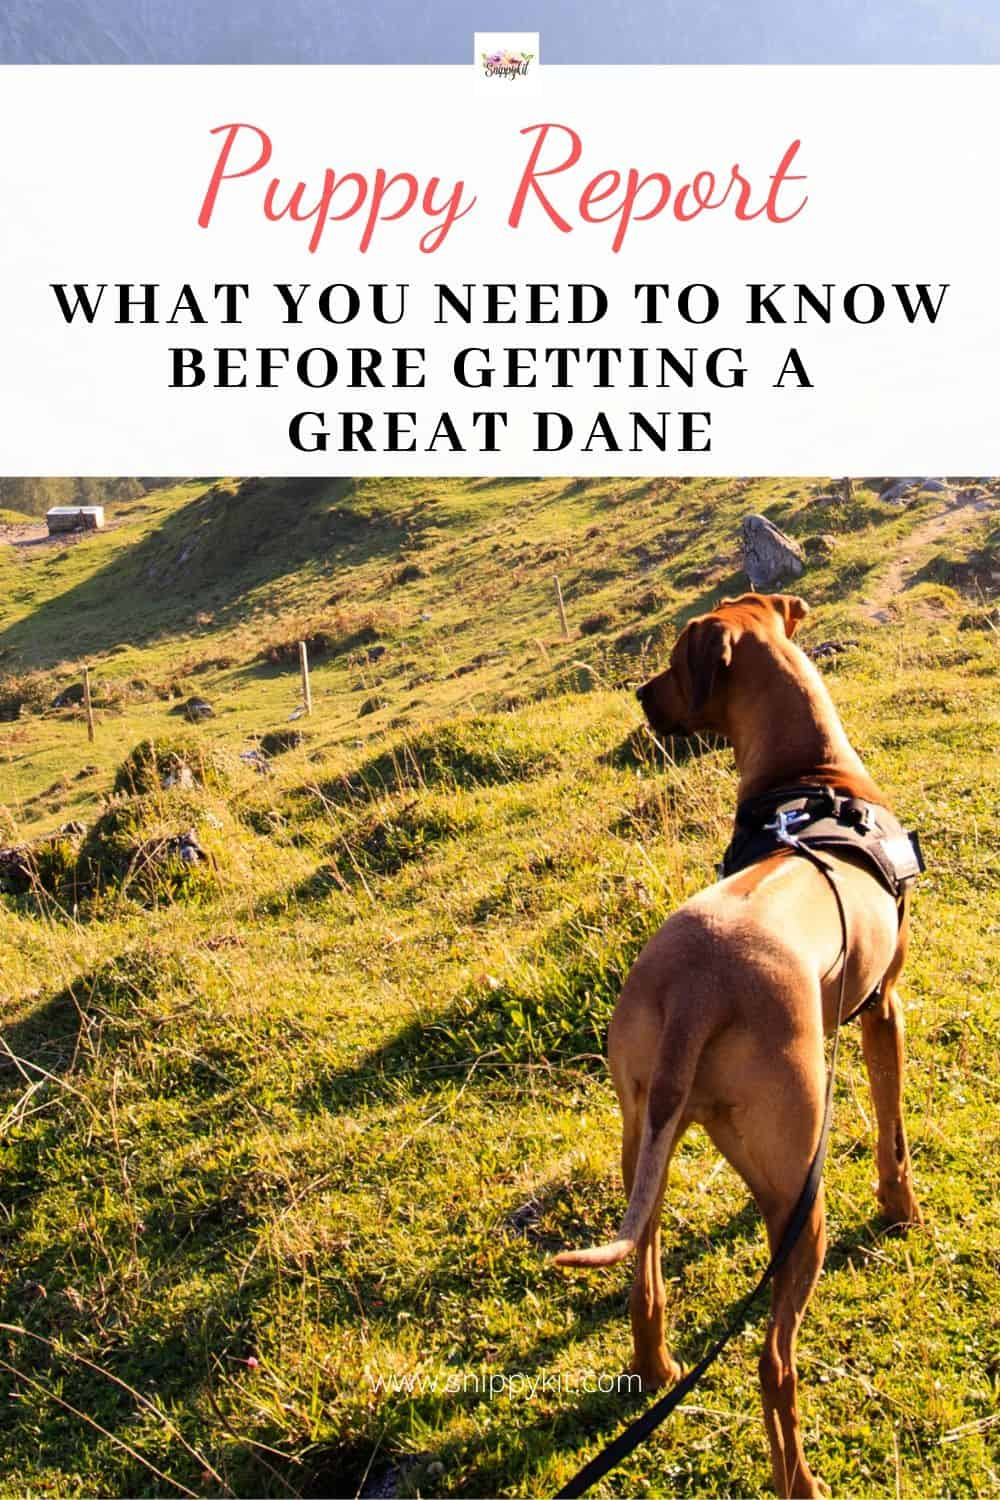 Great Danes are beautiful, gentle giants. They make some of the best family dogs, but there are a few things you need to know about before getting one. Check out these tips on owning a Great Dane.